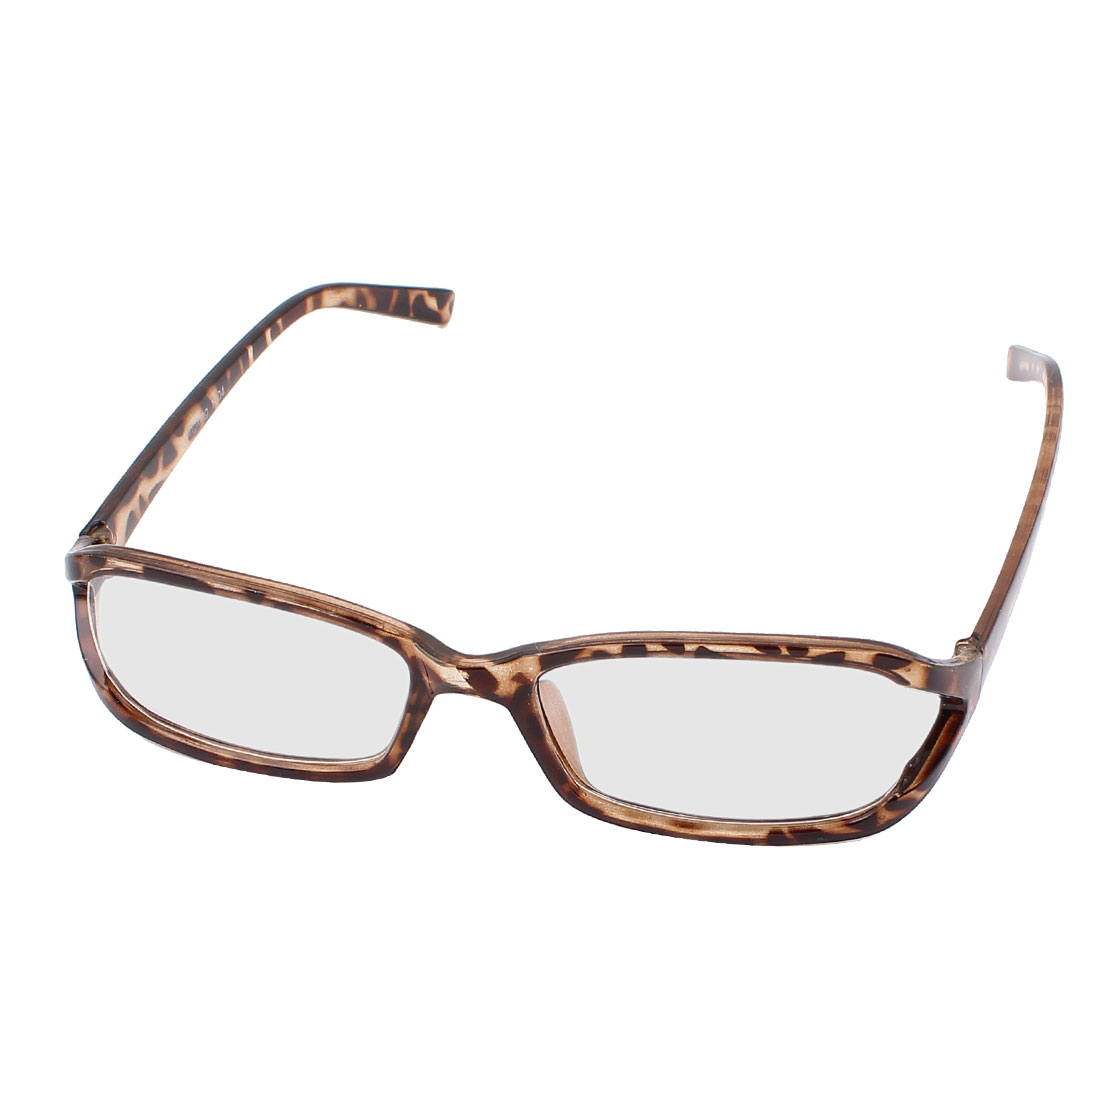 Leopard Pattern Arms Full Rim Single Bridge Clear Lens Plain Glasses Plano Spectacle